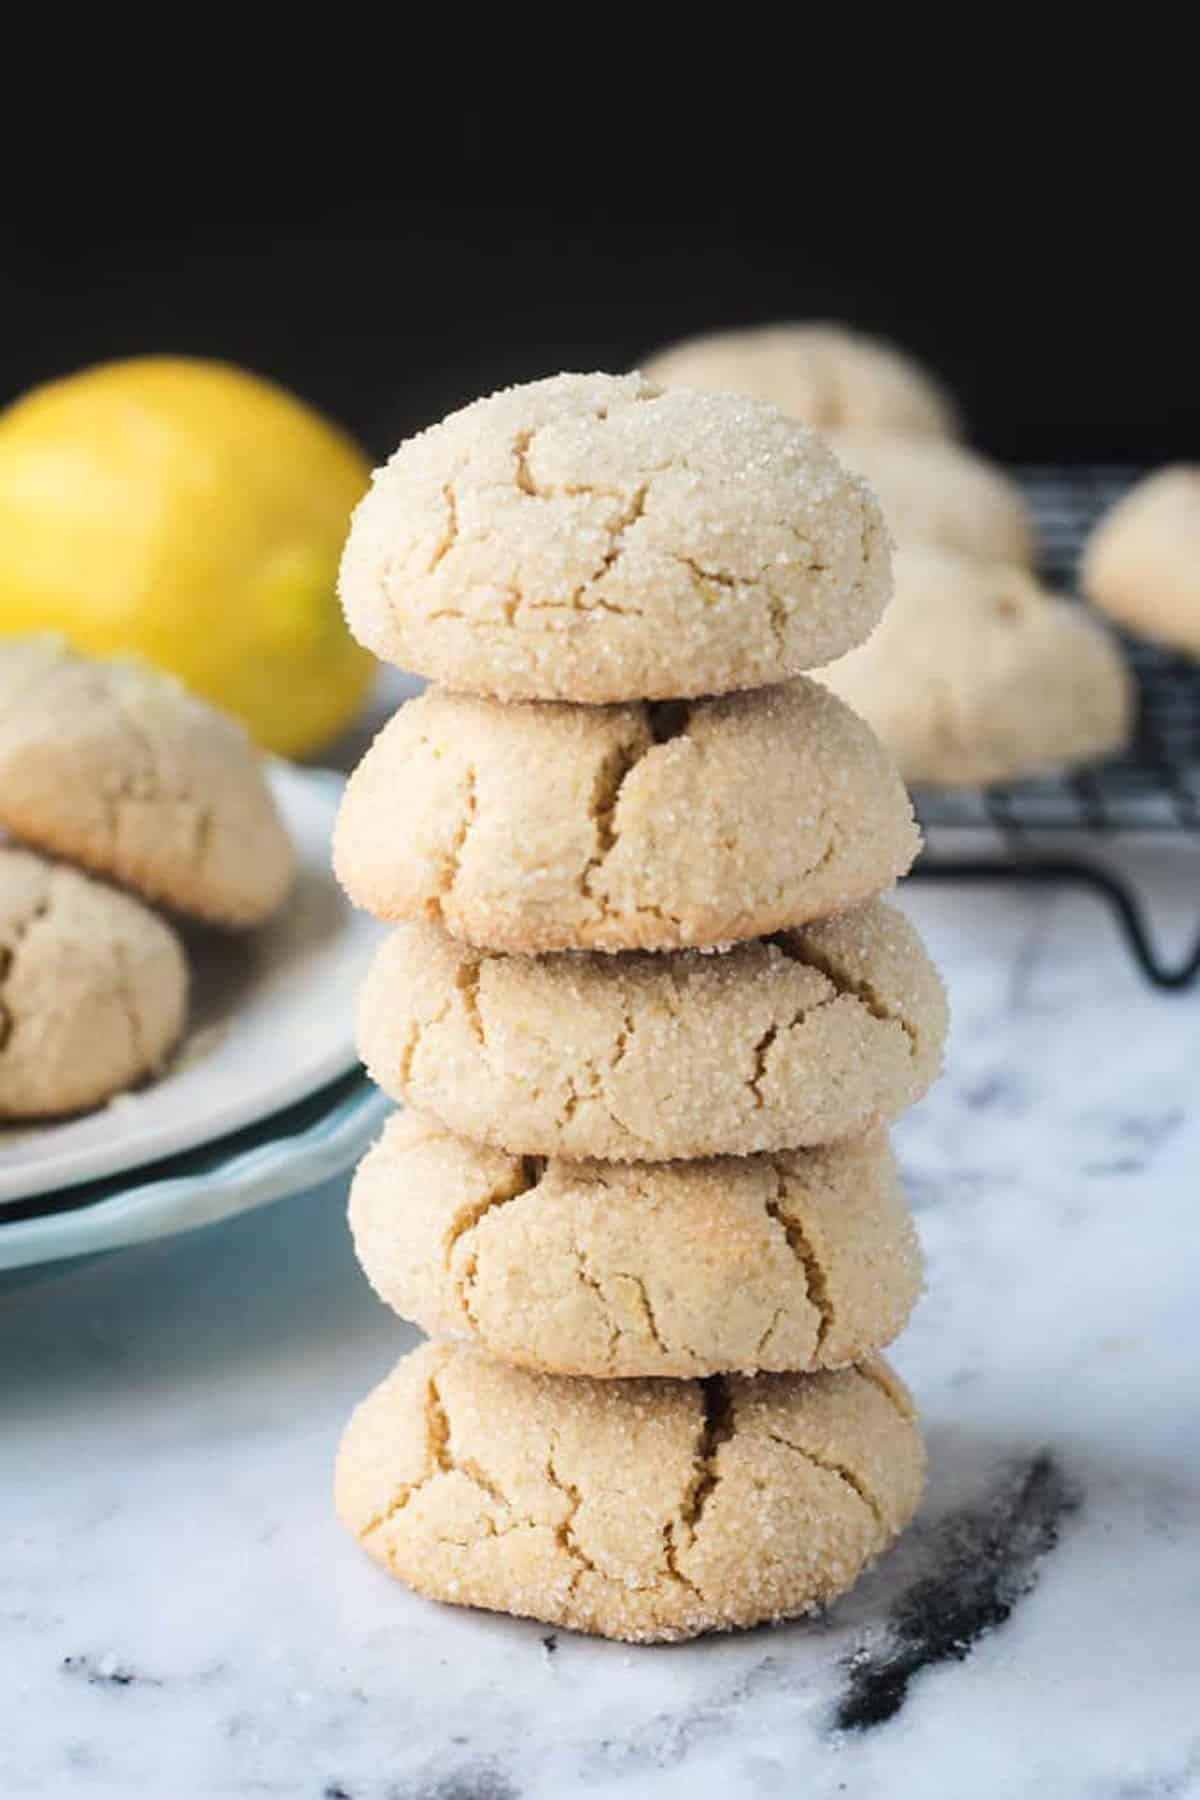 Stack of 5 lemon crinkle cookies on a white marble background.